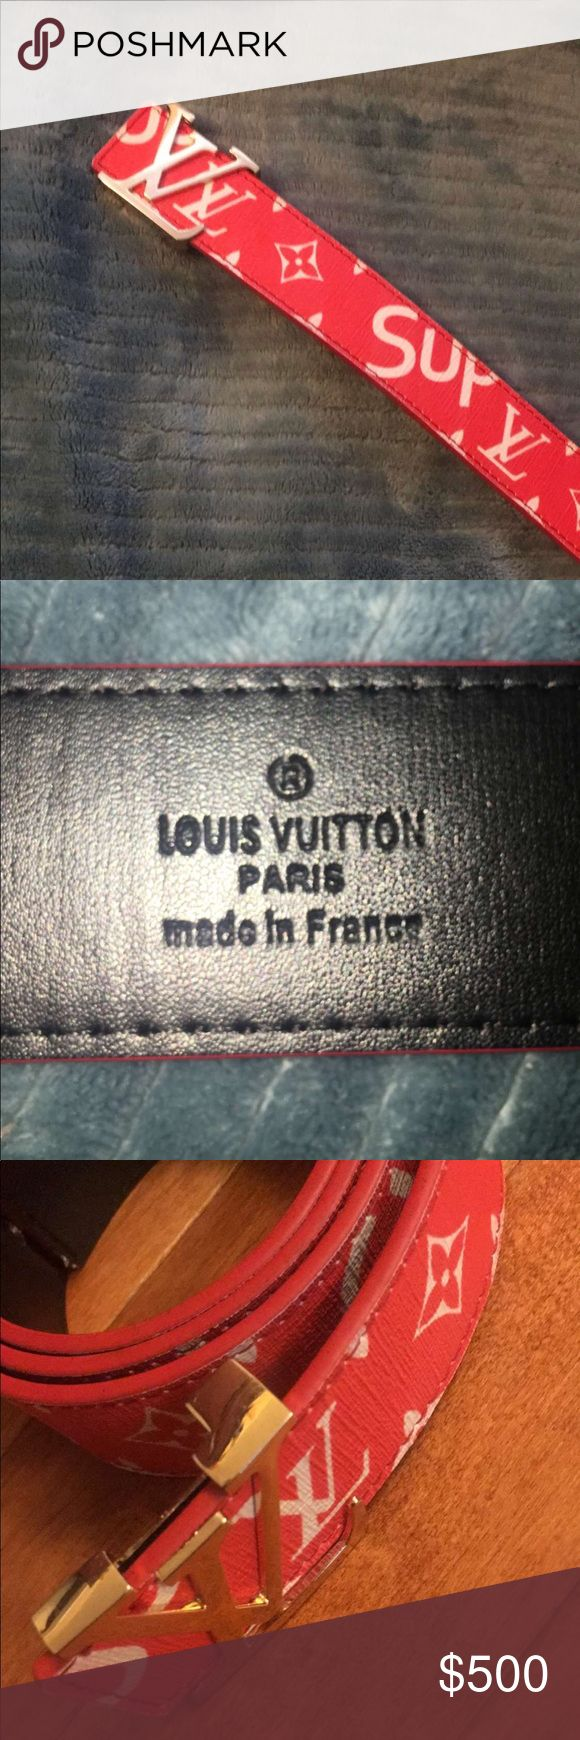 Real Louis Vuitton x Supreme Belt Red, LV print Supreme print. The condition is used (worn once). Only accepts payments through PAYPAL. Louis Vuitton Accessories Belts